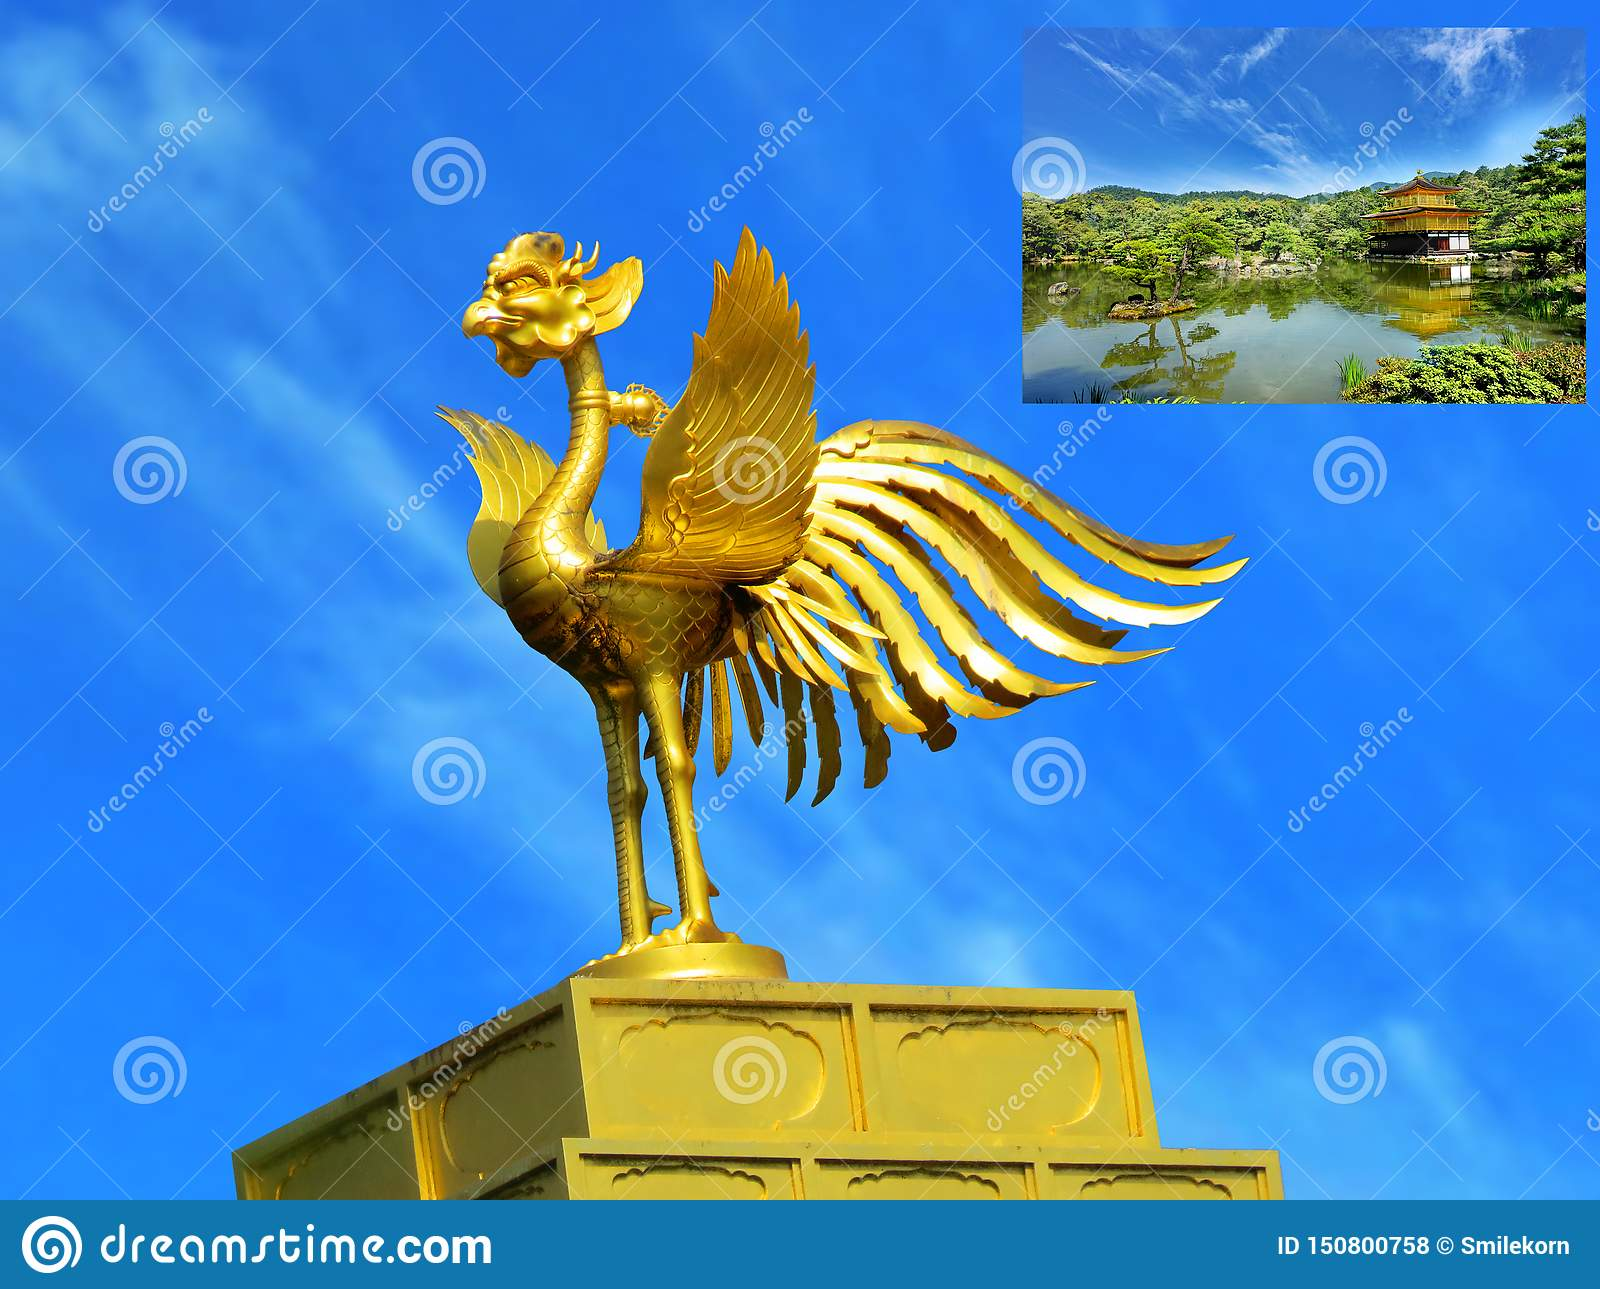 Golden phoenix of roof ornament of Kinkaku-ji Temple ,Kyoto,Japan